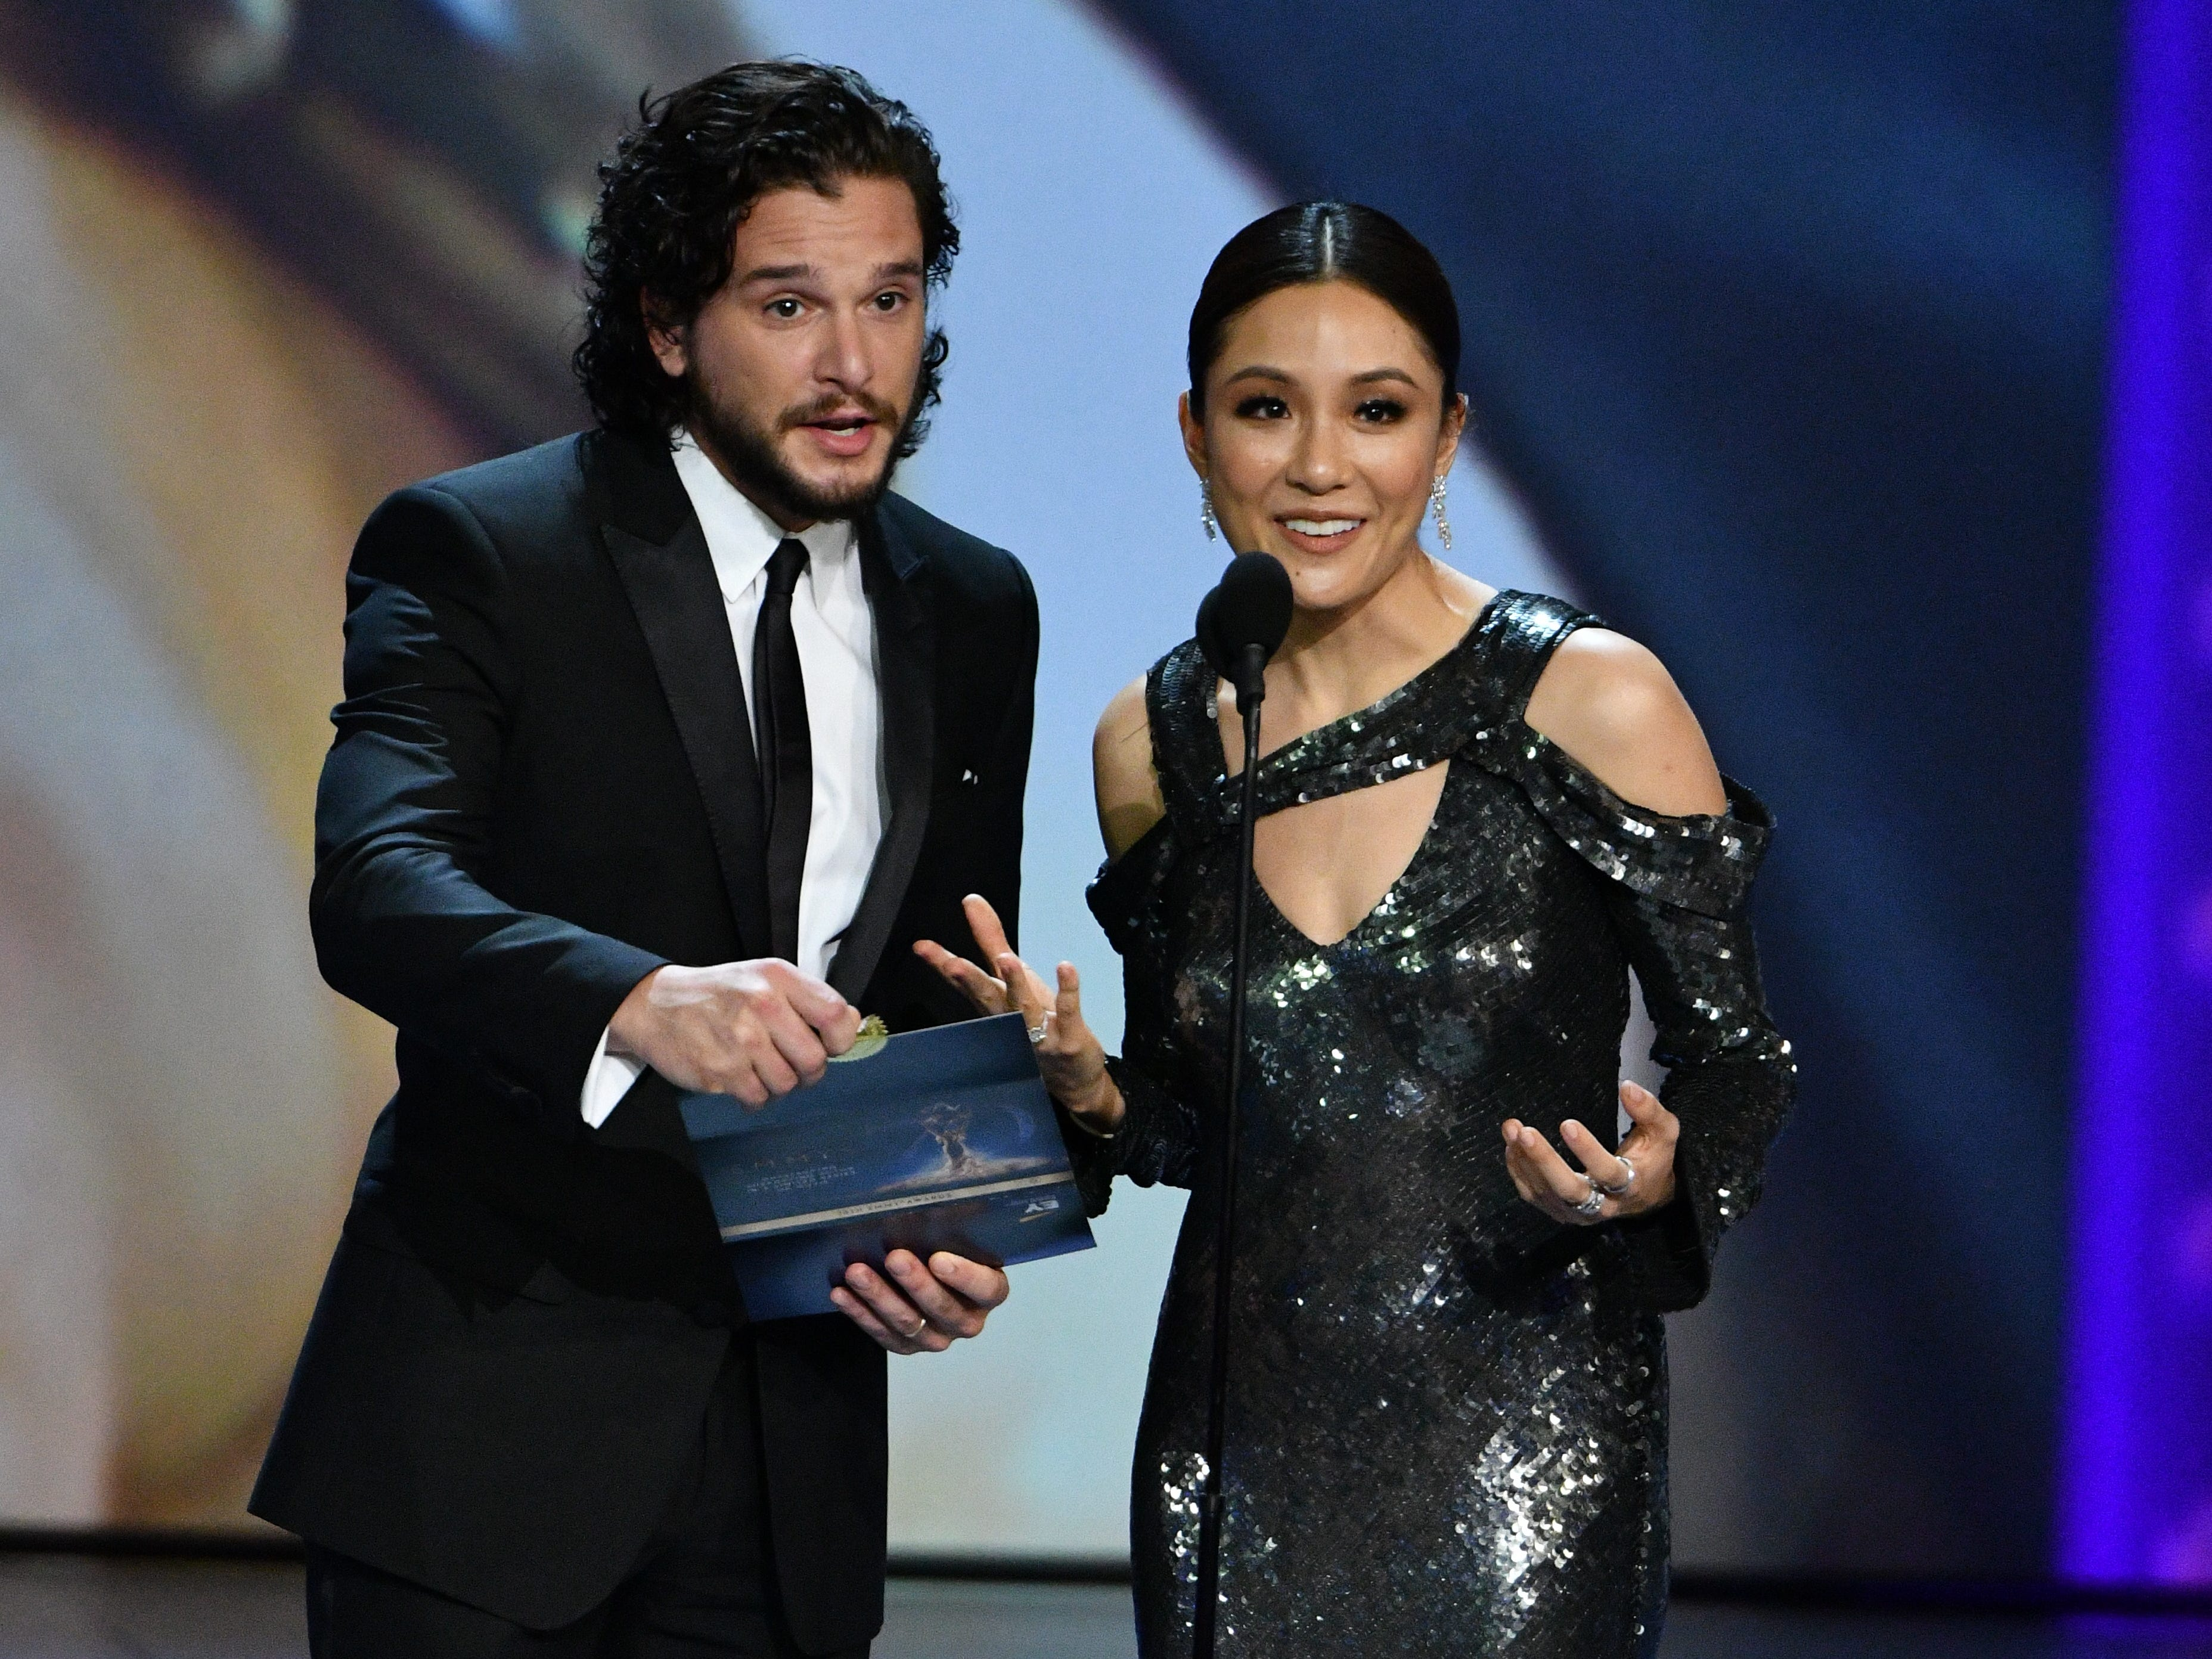 Kit Harington, left, & Constance Wu present the award for supporting actor in a limited series or movie.